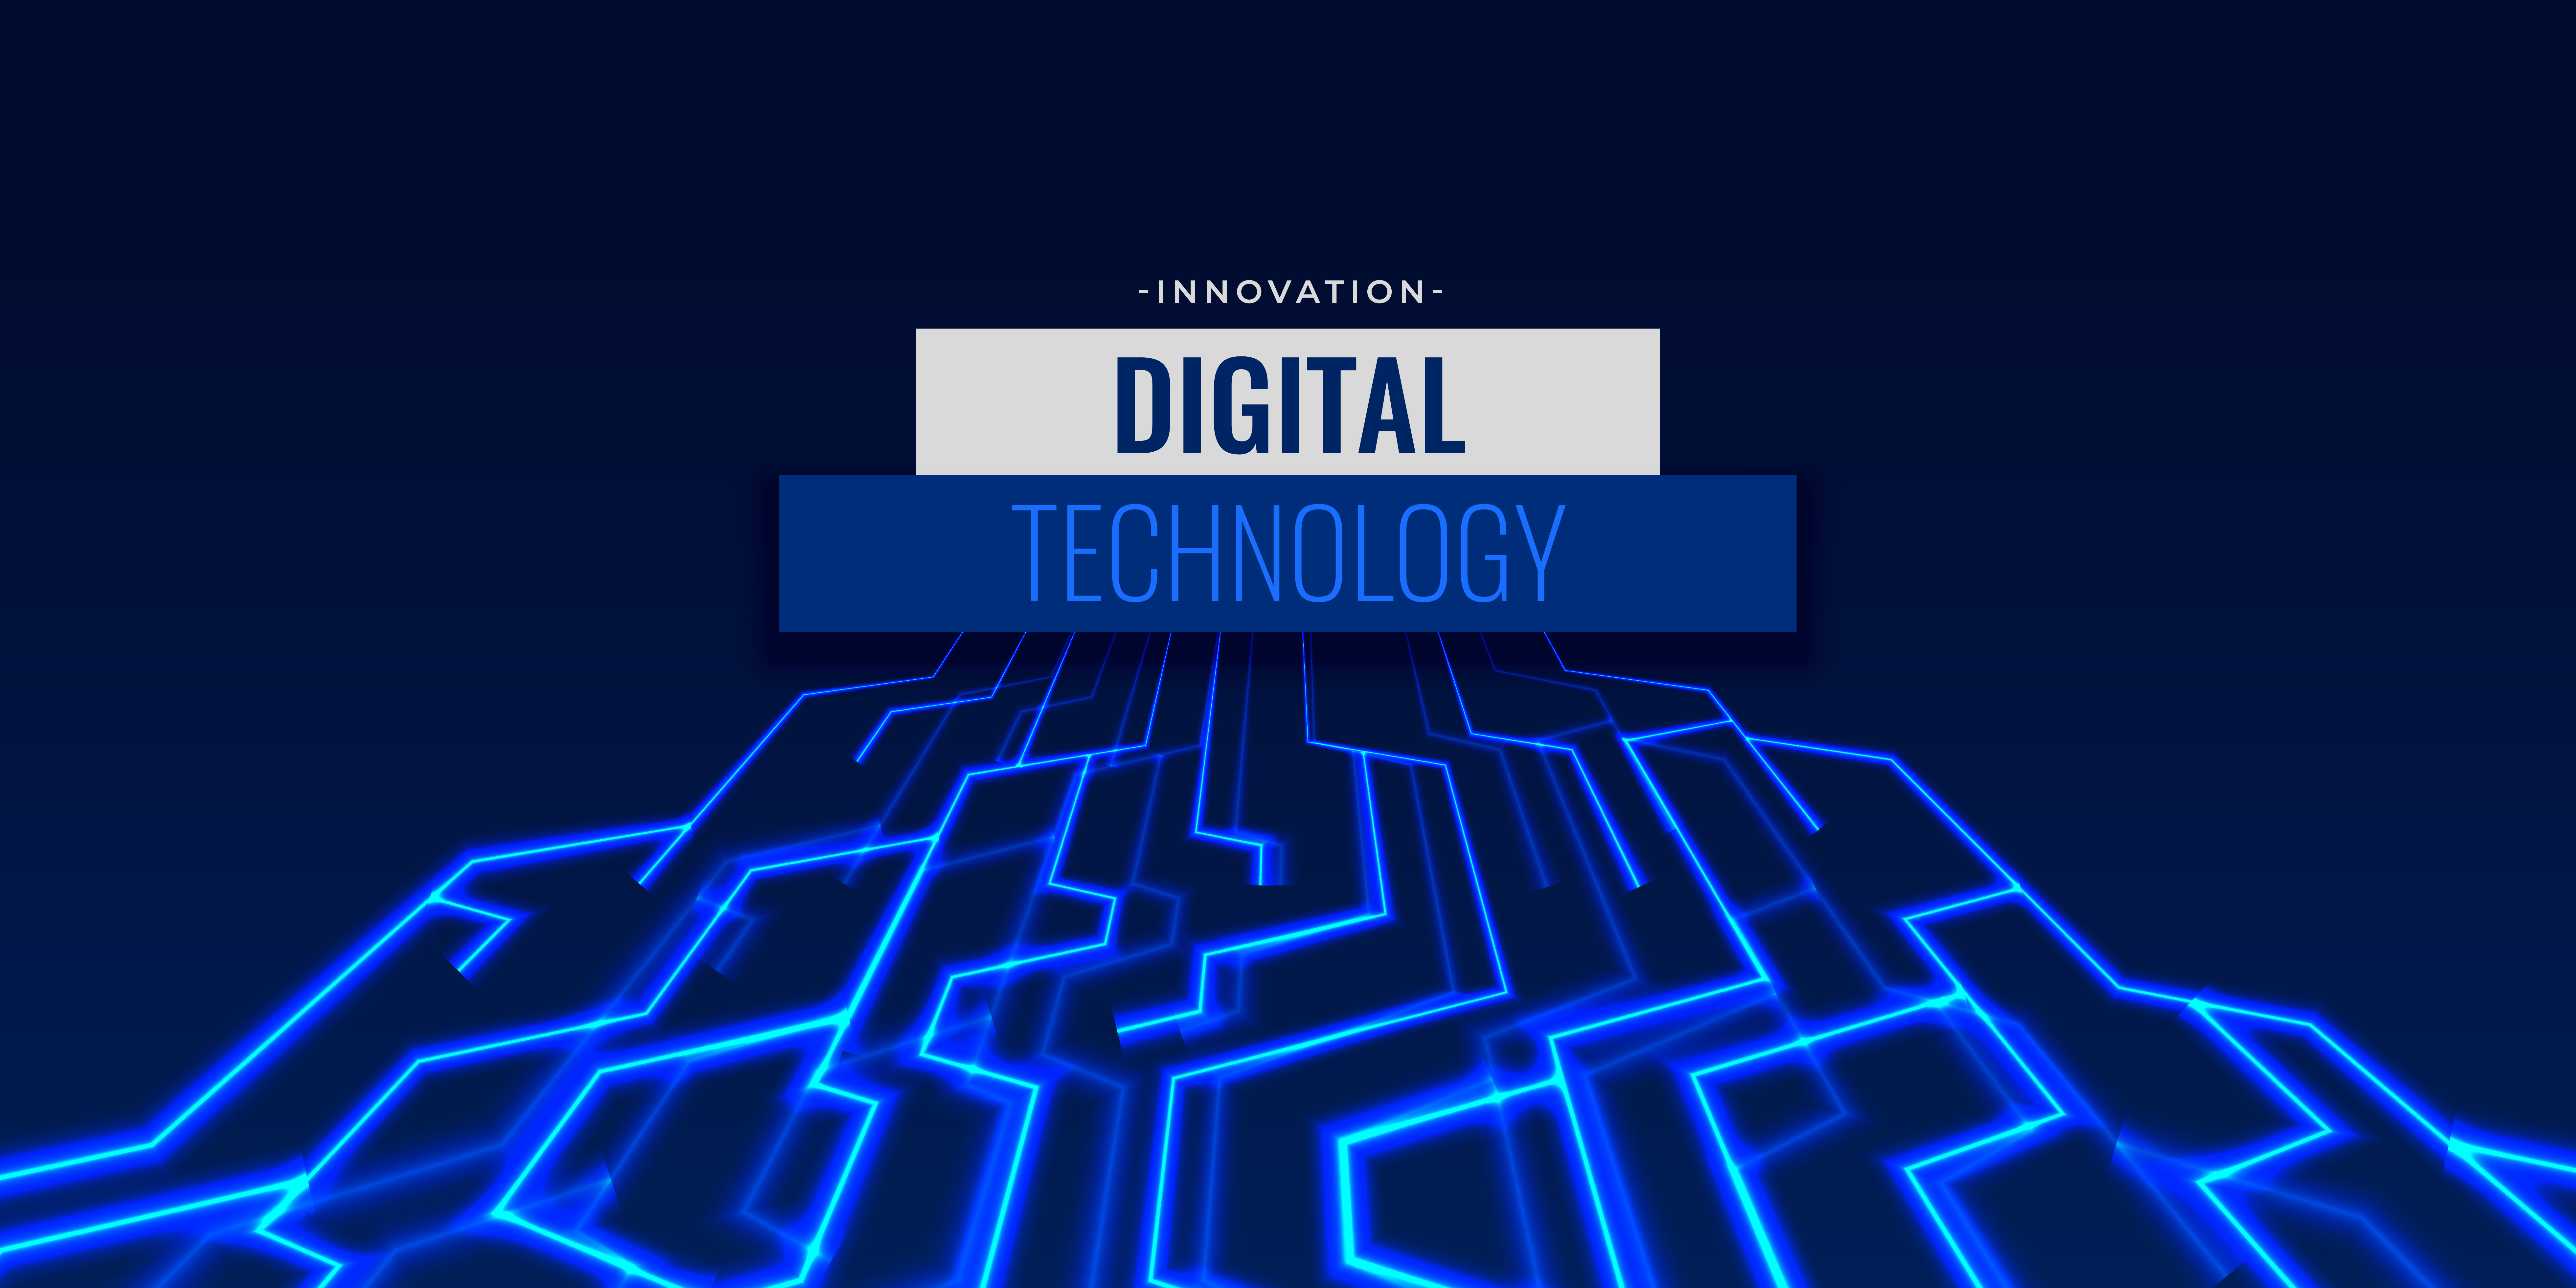 Digital Technology Background With Glowing Circuit Lines